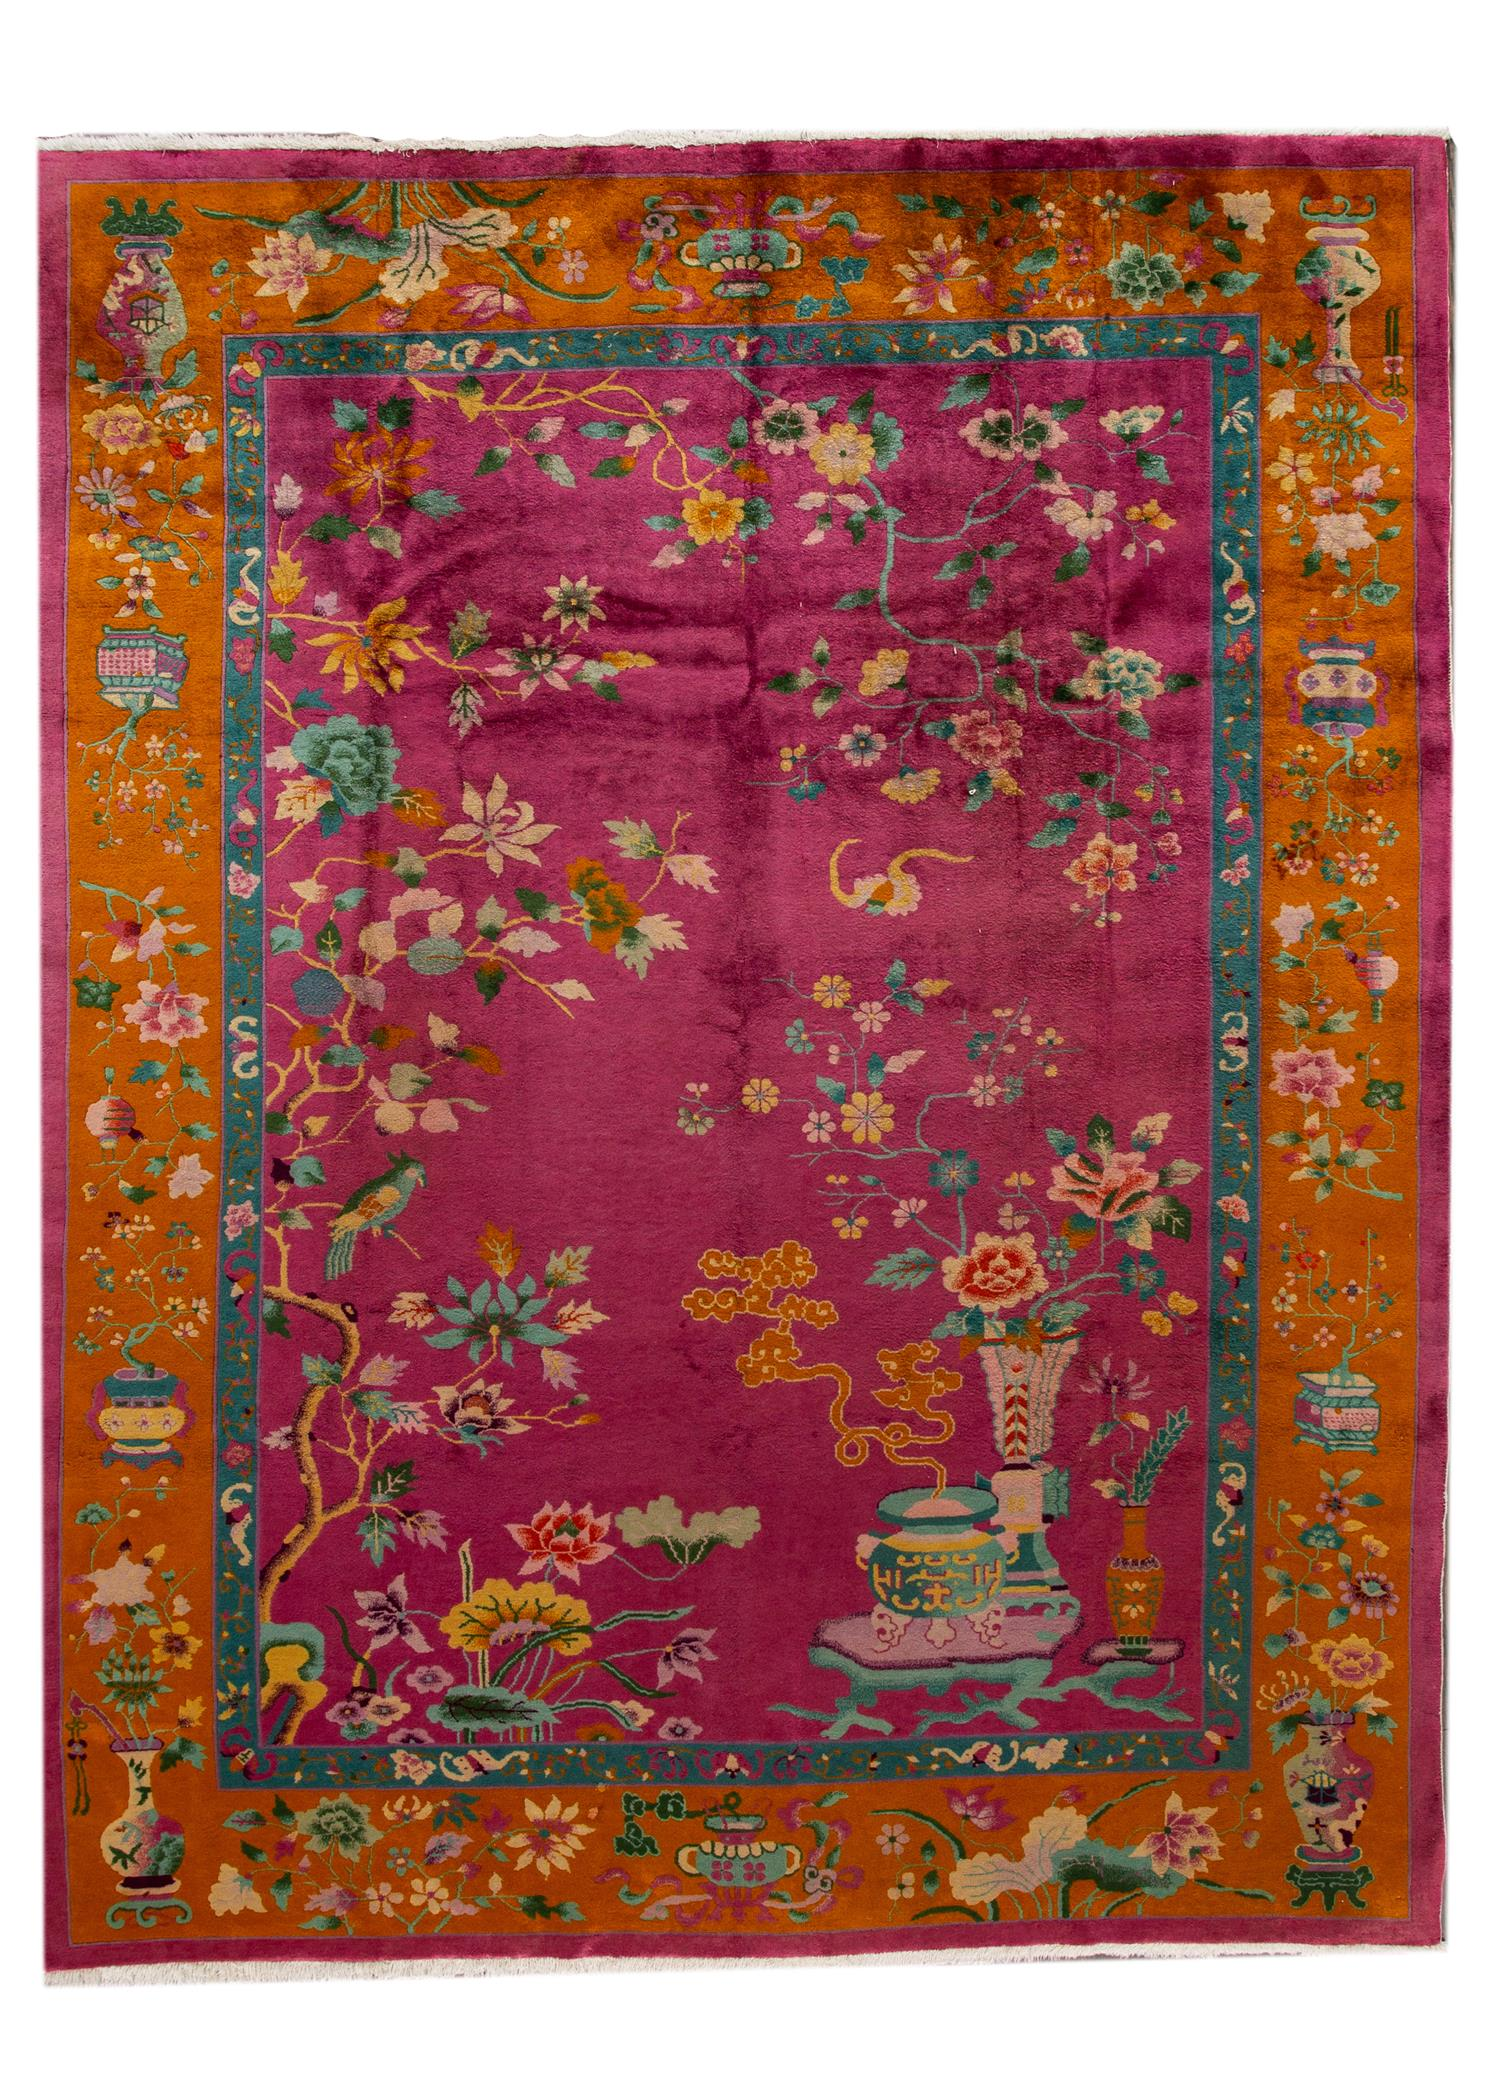 Antique Chinese Deco Rug, 9X11